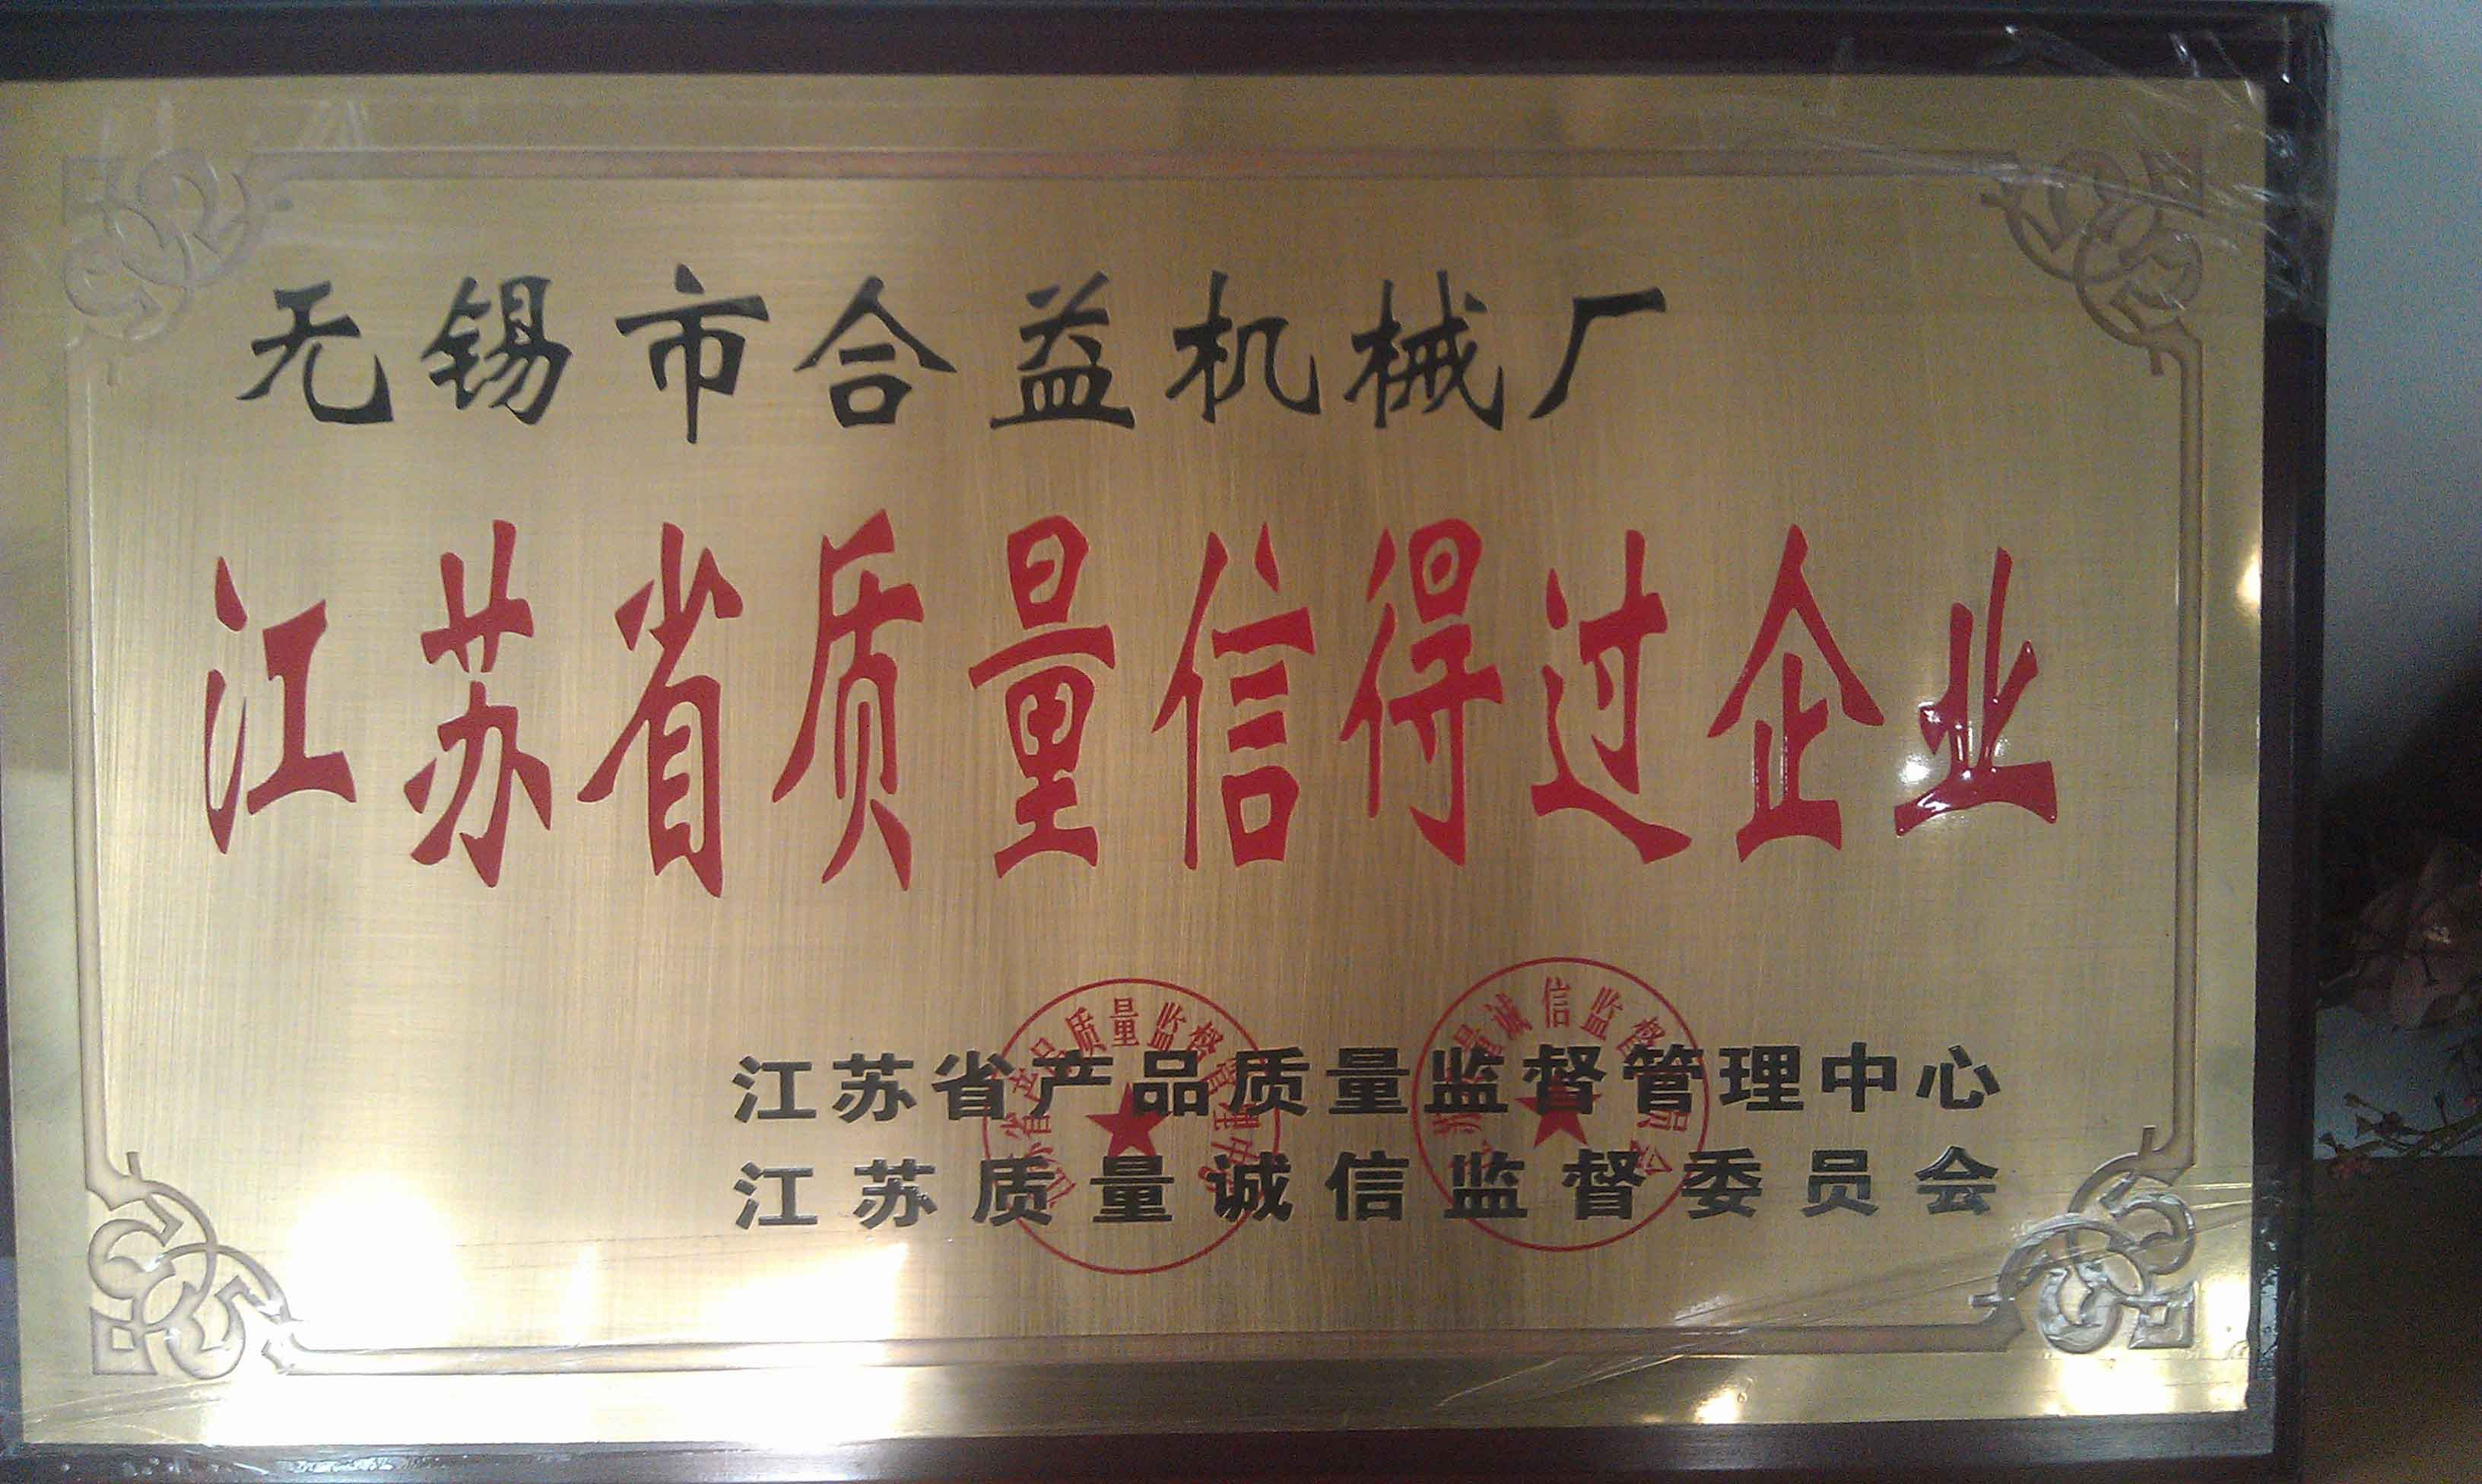 China Jiangsu New Heyi Machinery Co., Ltd Certification